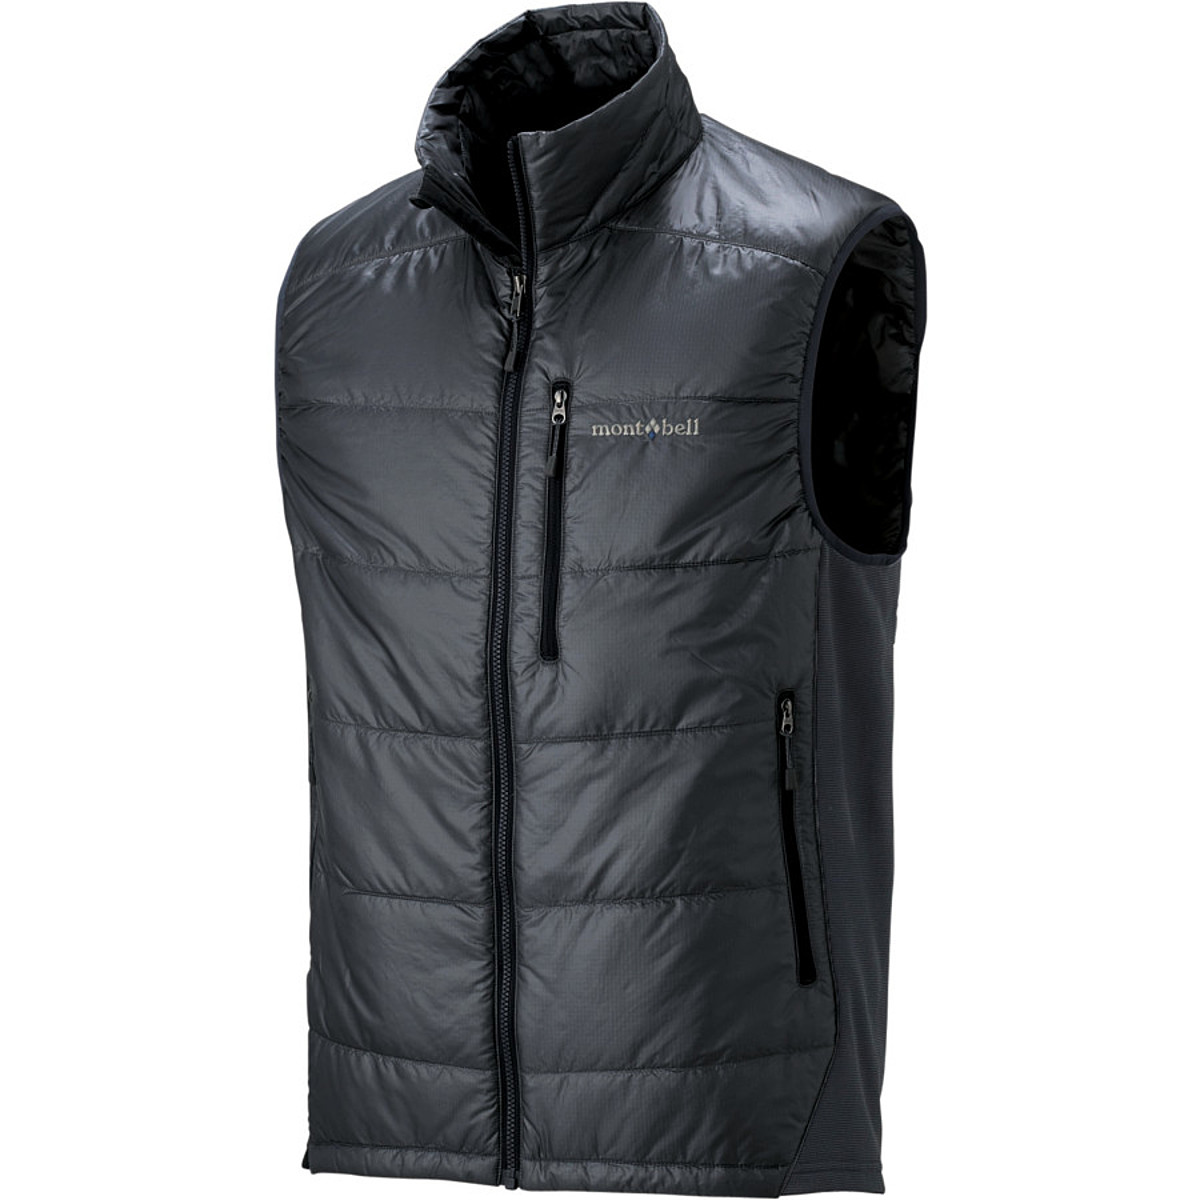 MontBell Thermawrap Sport Vest